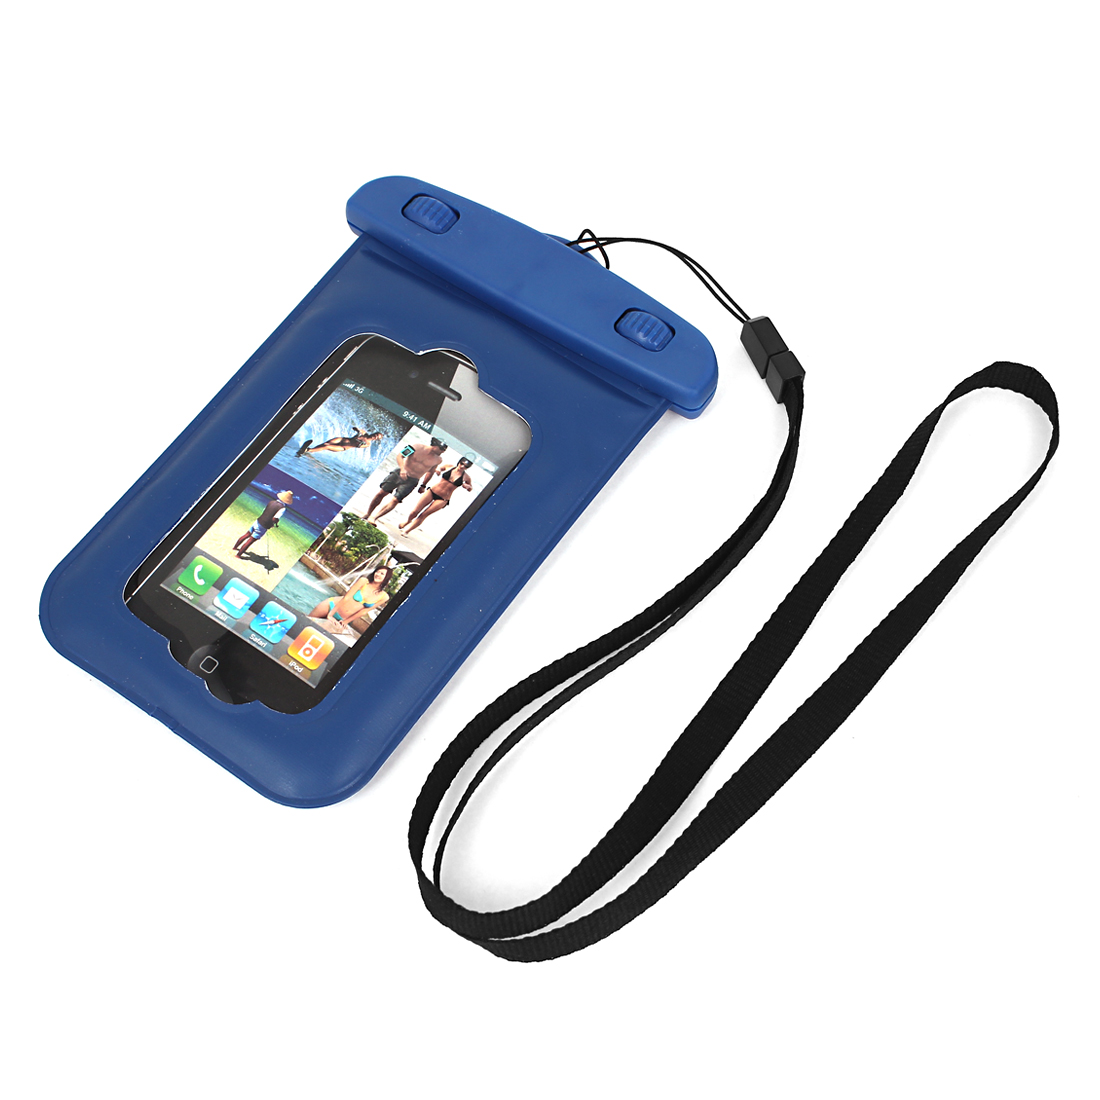 Waterproof Bag Holder Pouch Case Blue for iPhone 4/4S w Neck Strap